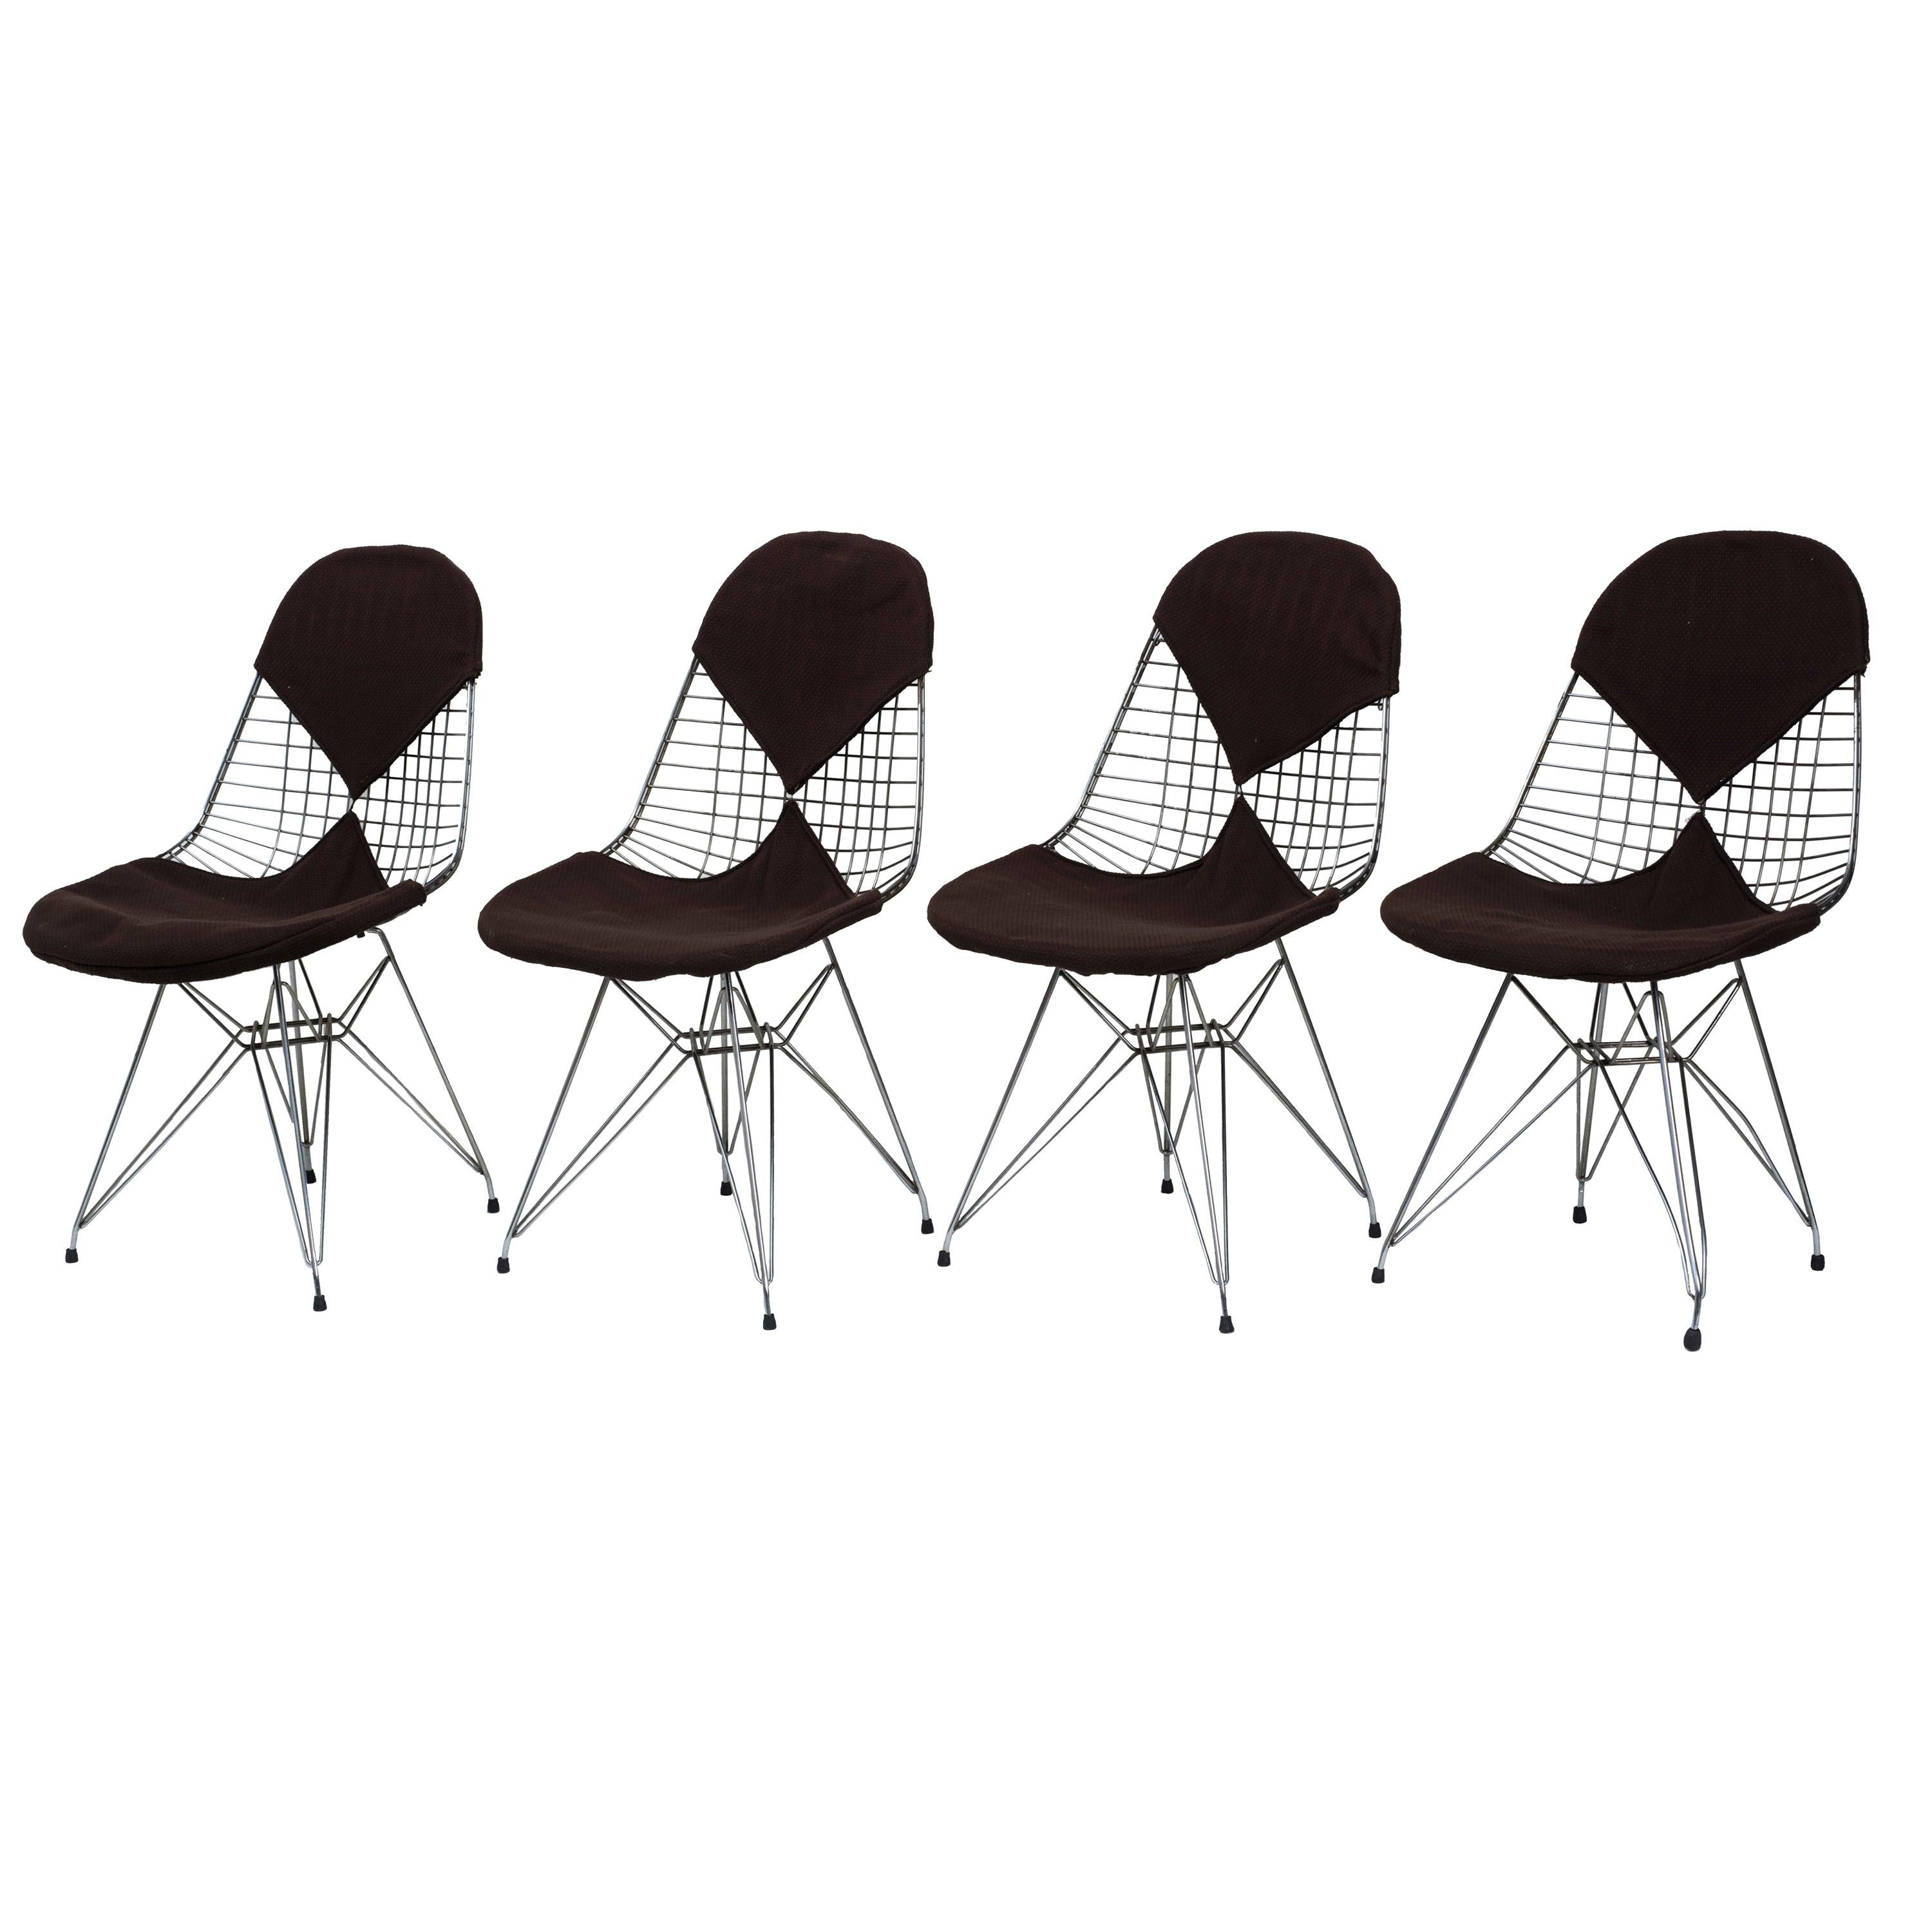 """Four Chairs """"DKR/2 Wire"""" for Herman Miller, 1950s, Charles & Ray Eames"""